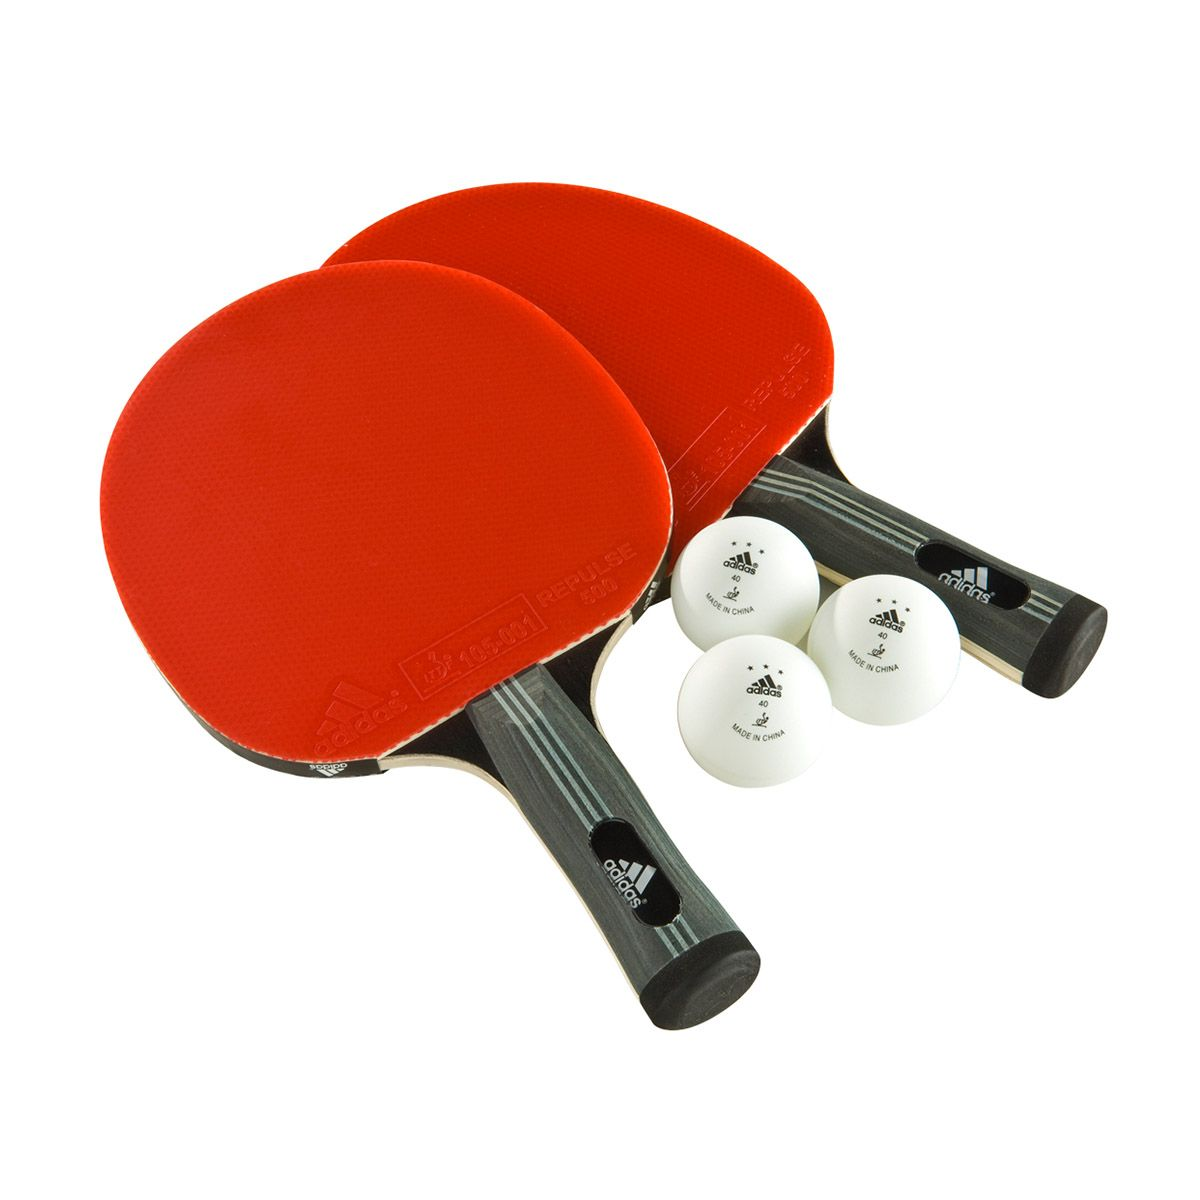 Wack Sport Tennis De Table Table Tennis Unit Reflection Physical Education At Cis Hz